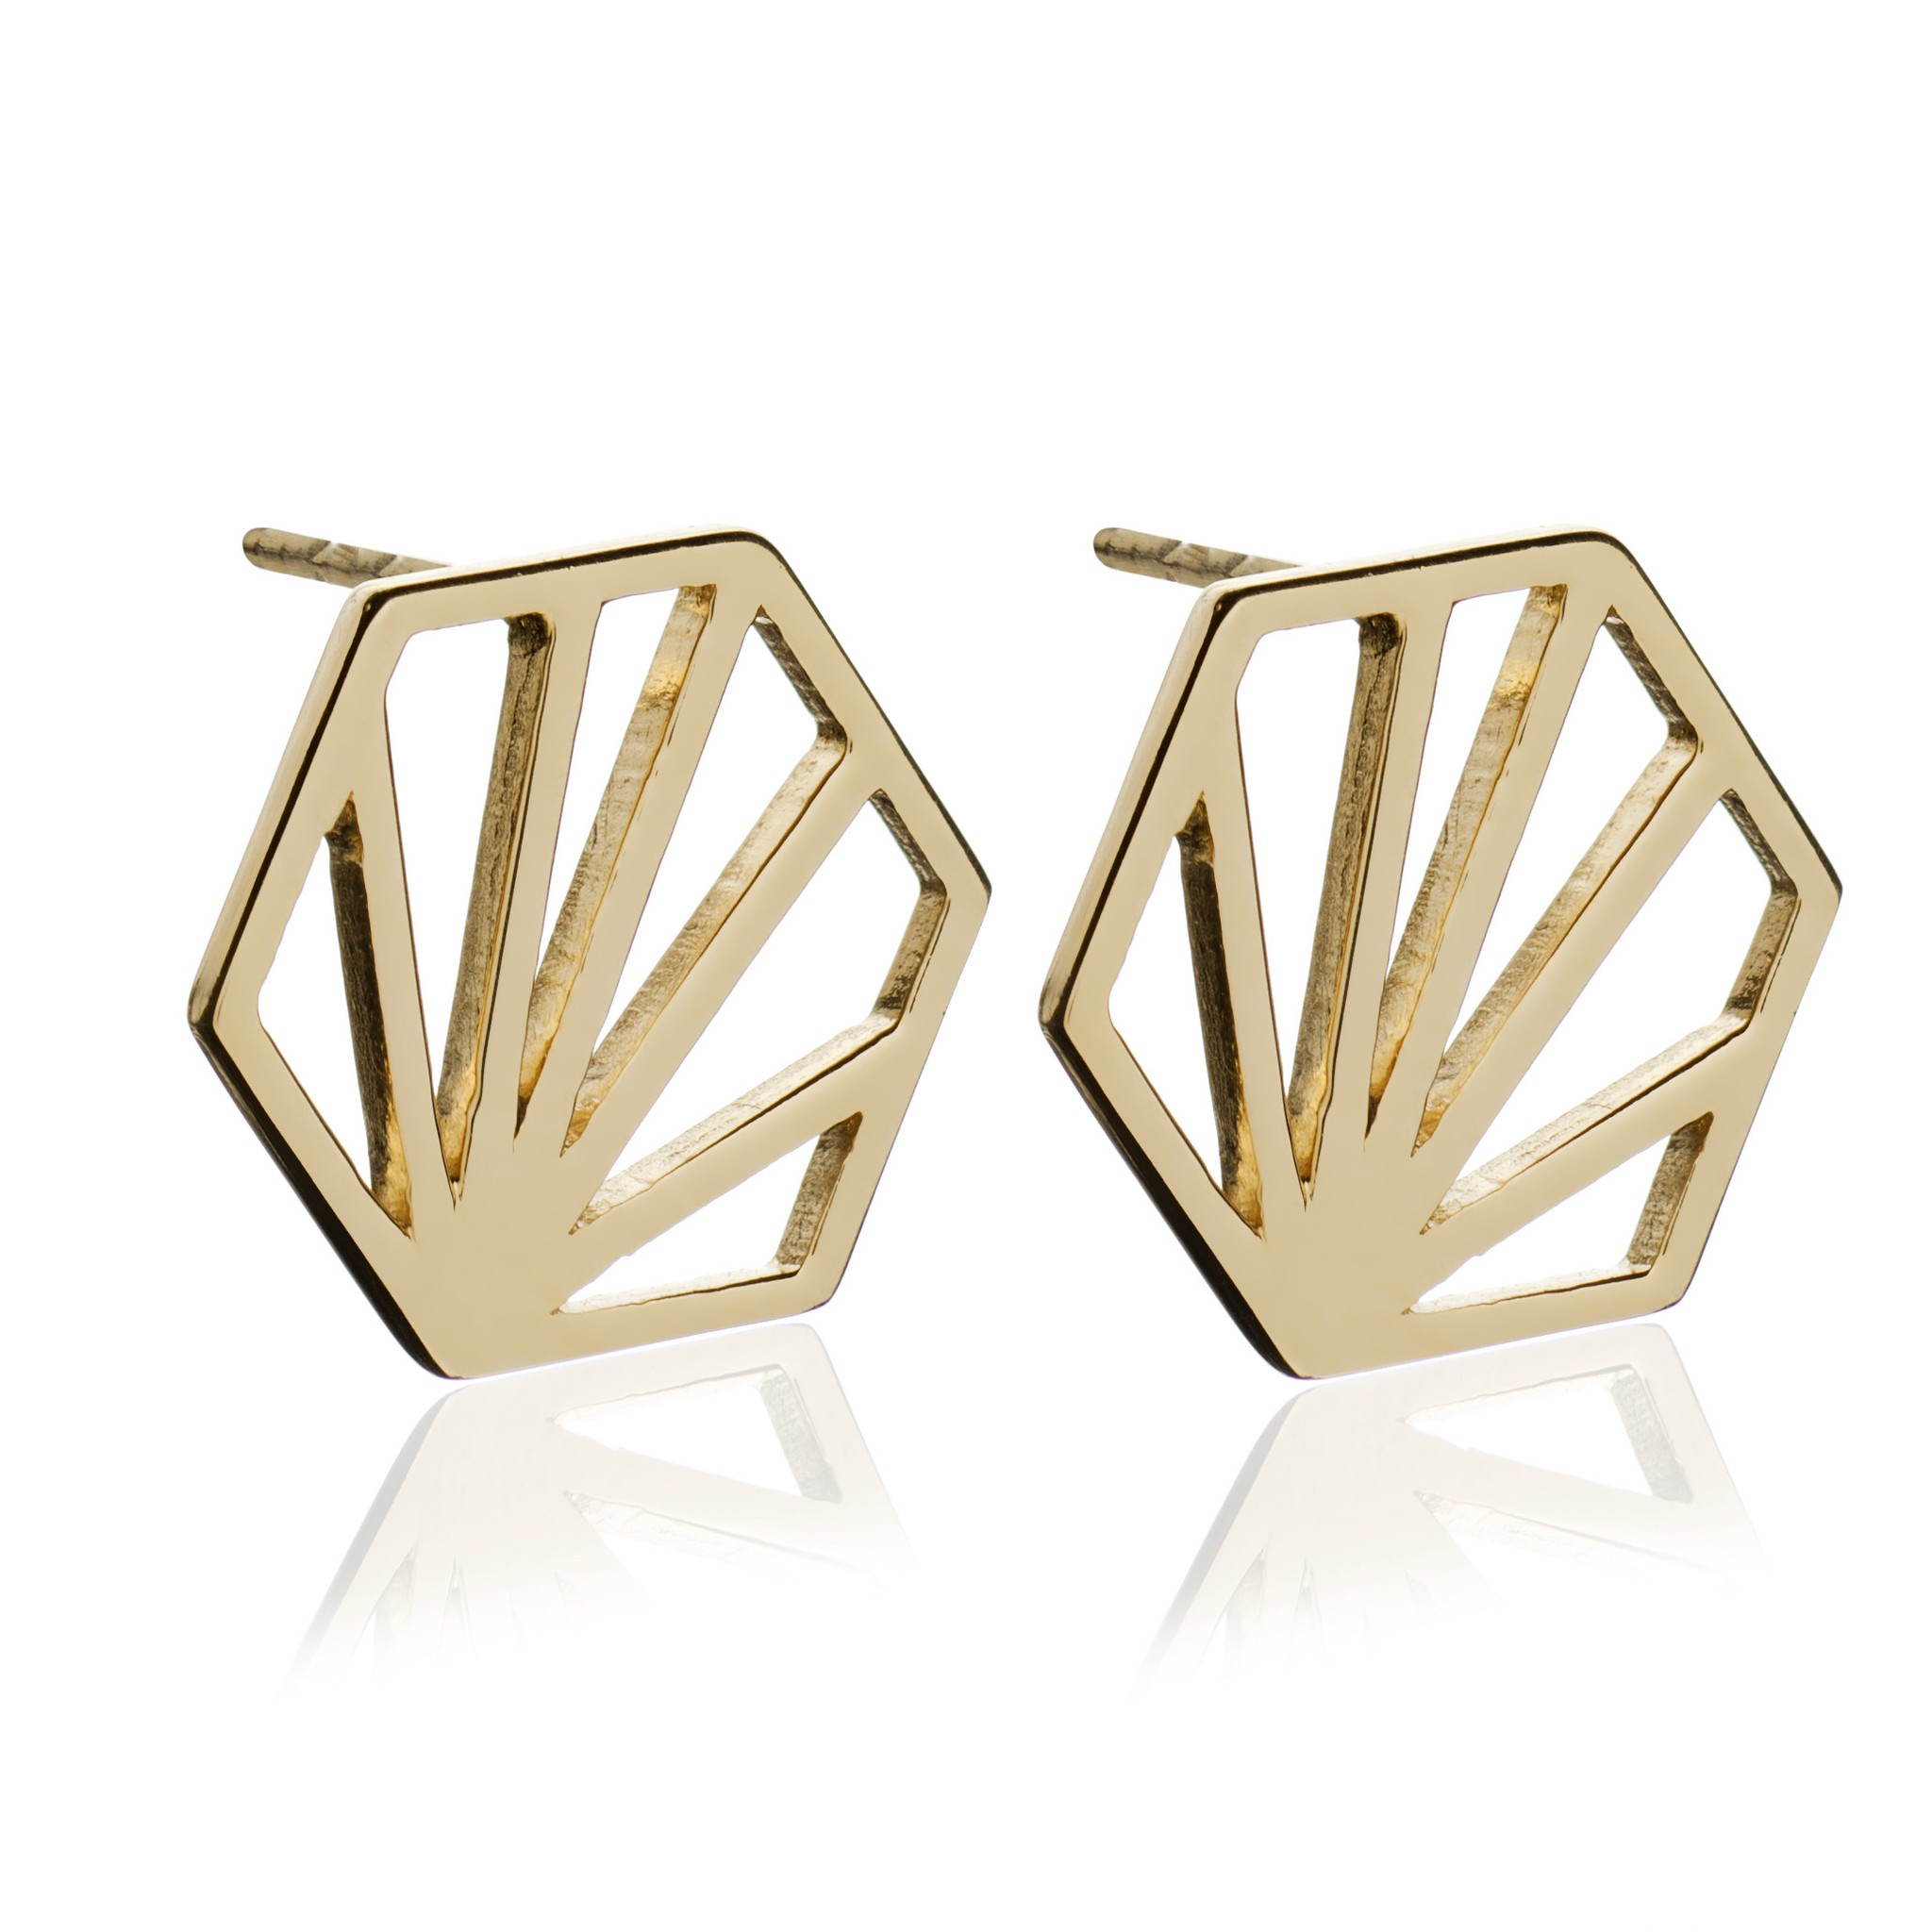 garment earrings medusa hexagon gold quarter versace stud greca